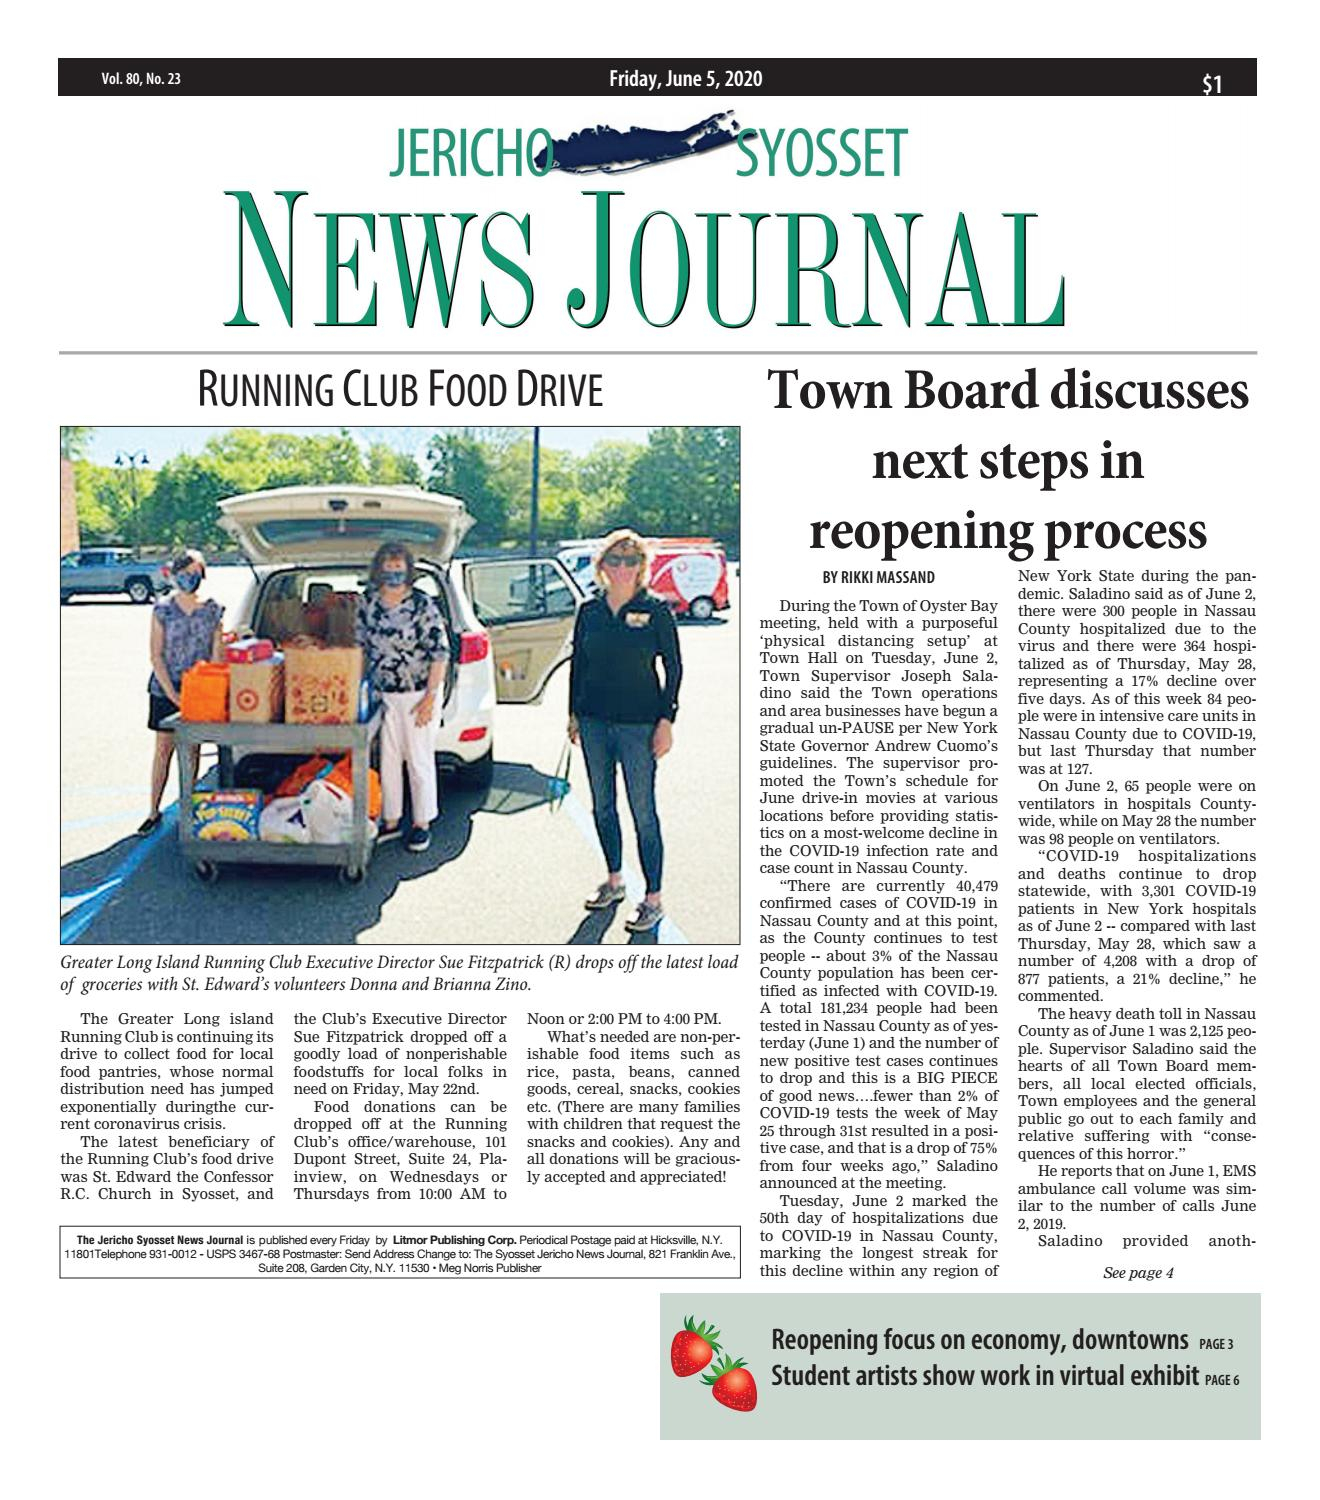 Jericho News Journal 06 05 2020Litmor Publishing – Issuu Regarding Town Oyster Bay Sanitation Calendar